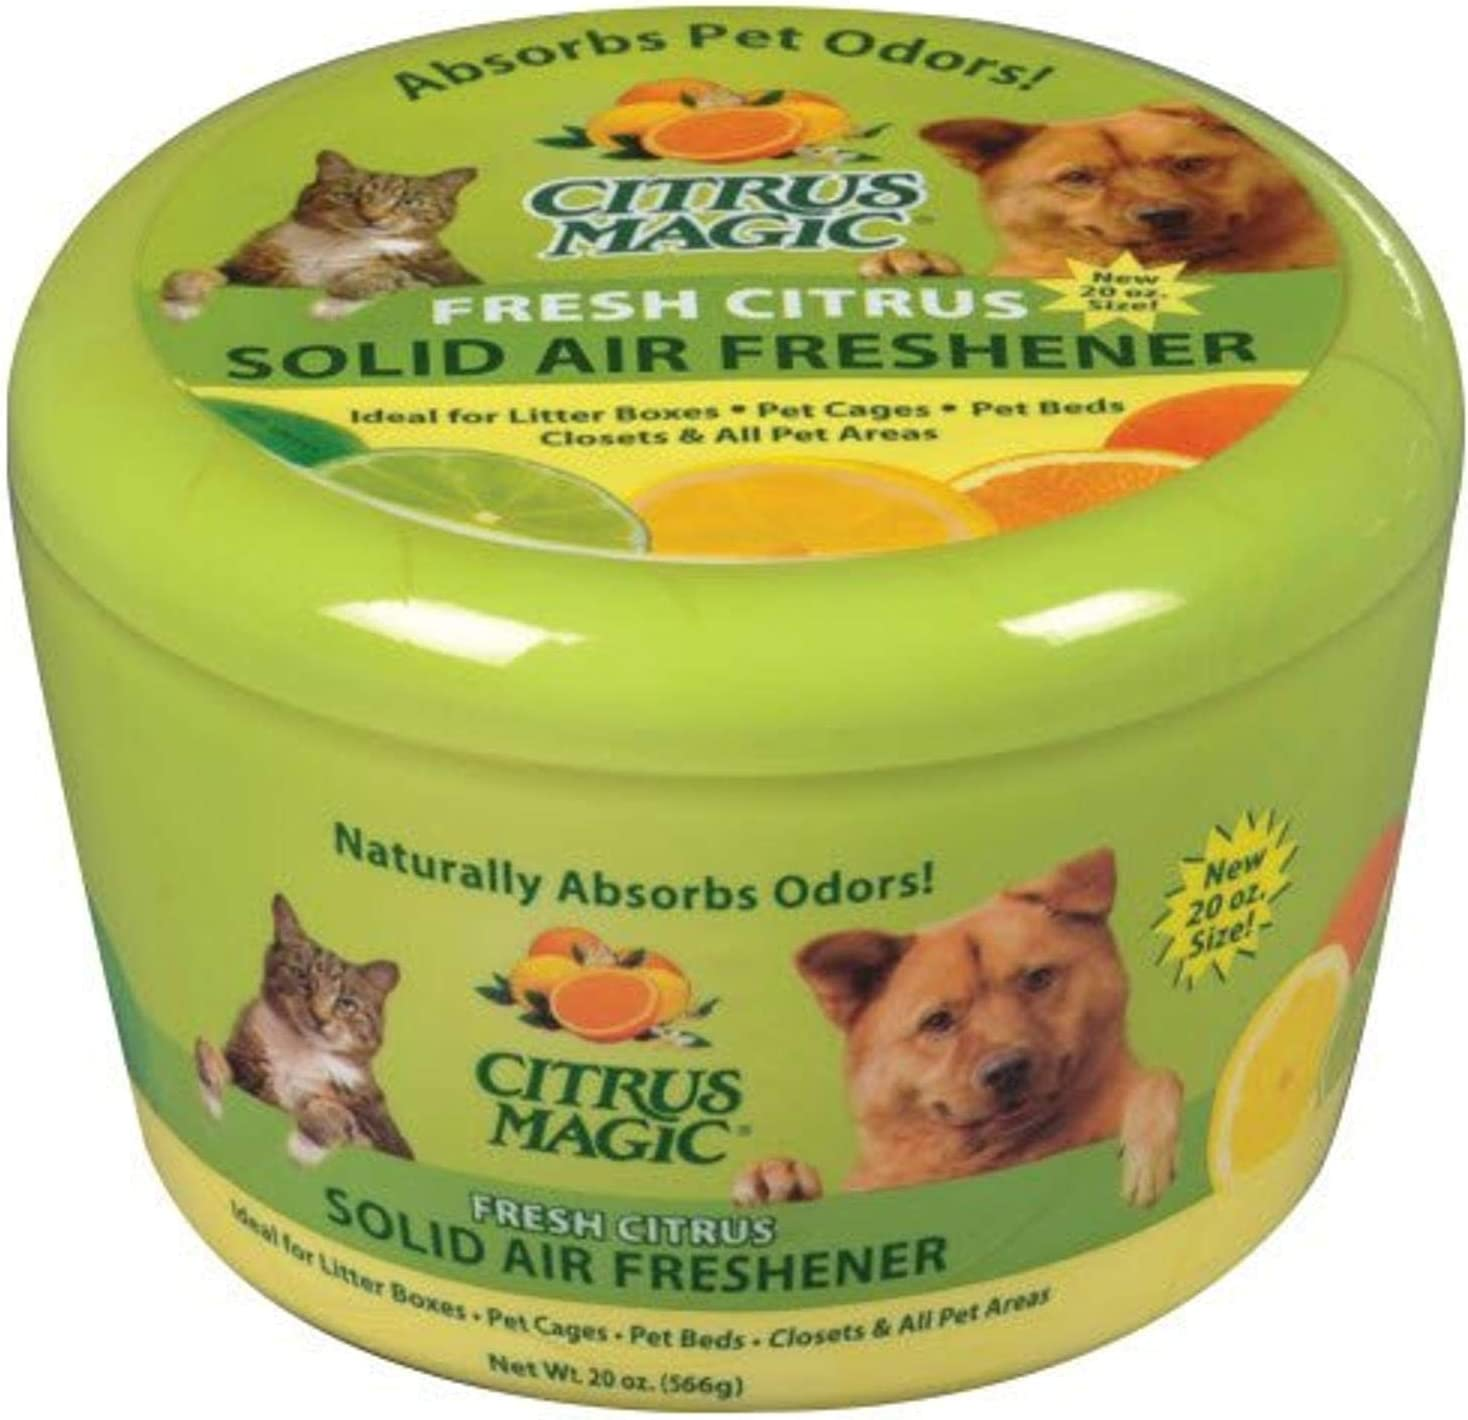 Citrus Magic Pet Odor Absorbing Solid Air Freshener